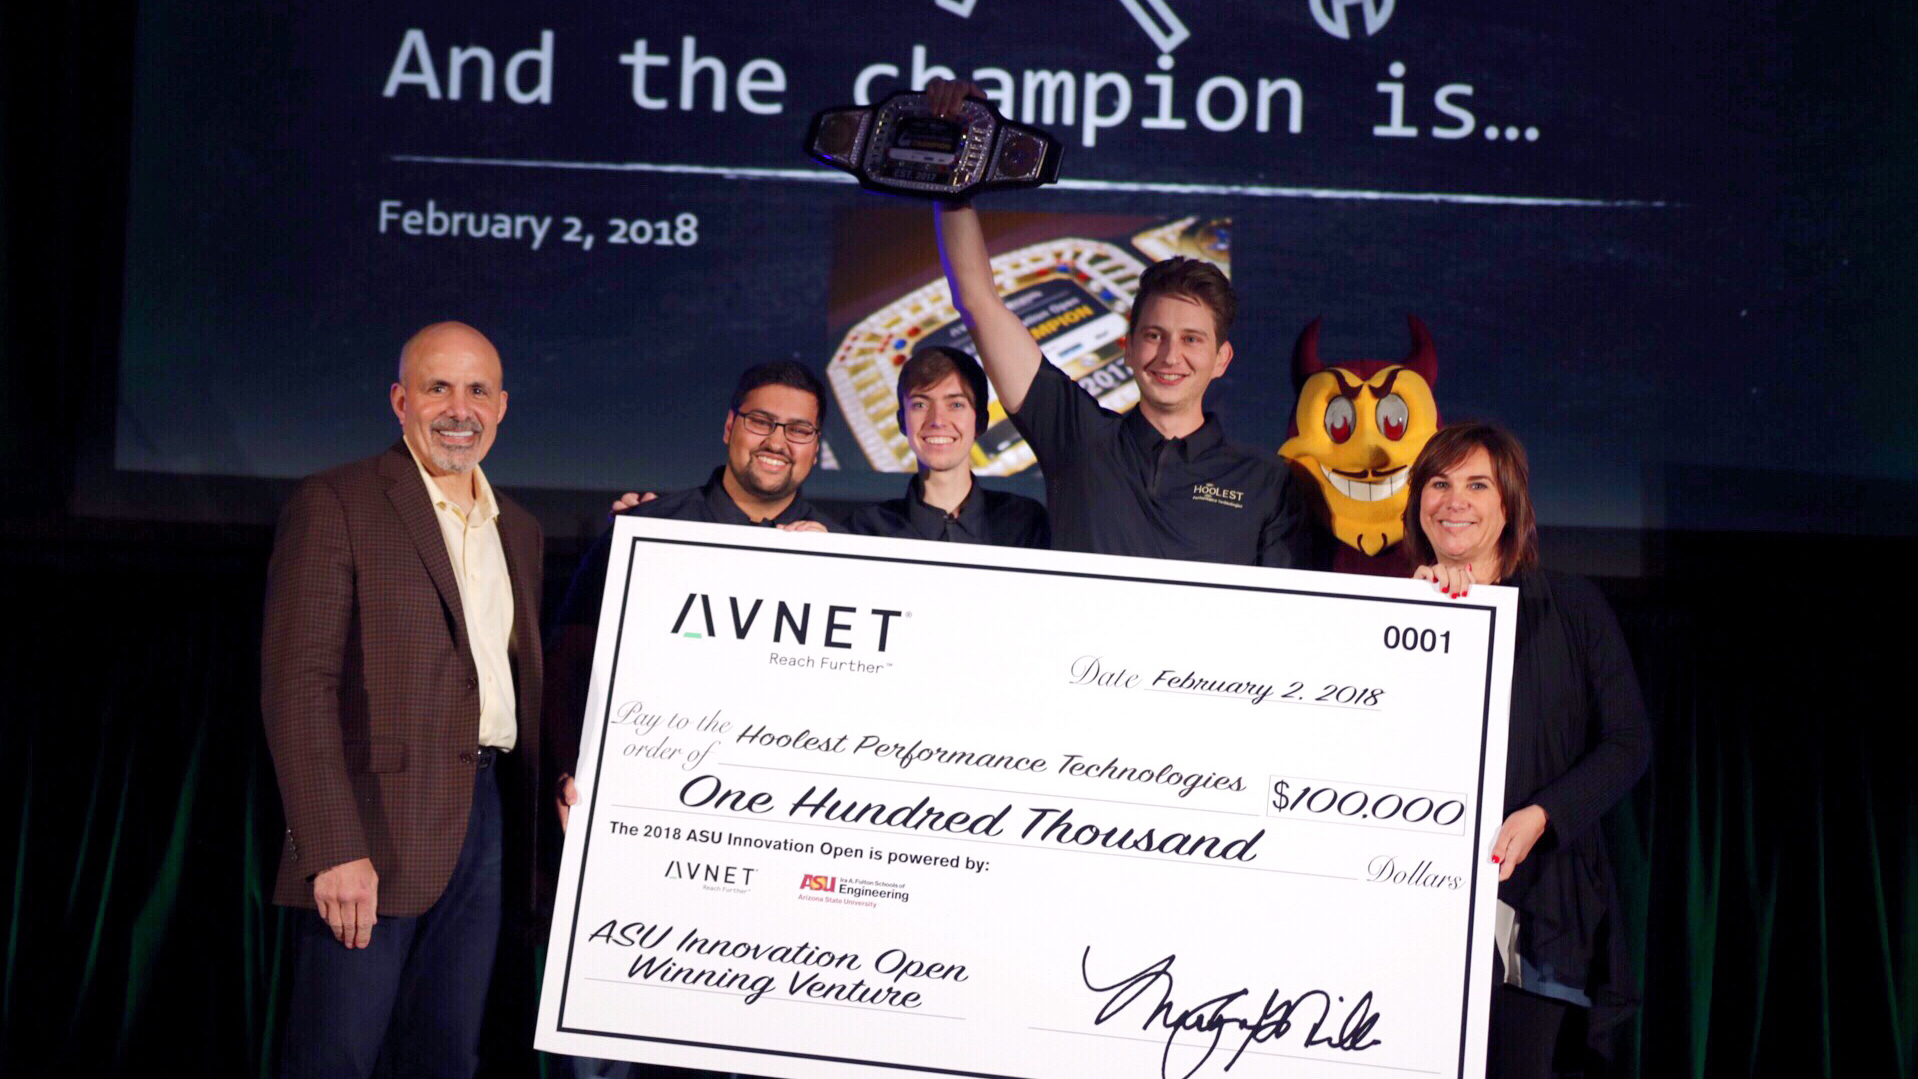 Hoolest team stand on a stage holding gigantic $100,00 prize check at the 2017 ASU Innovation Open